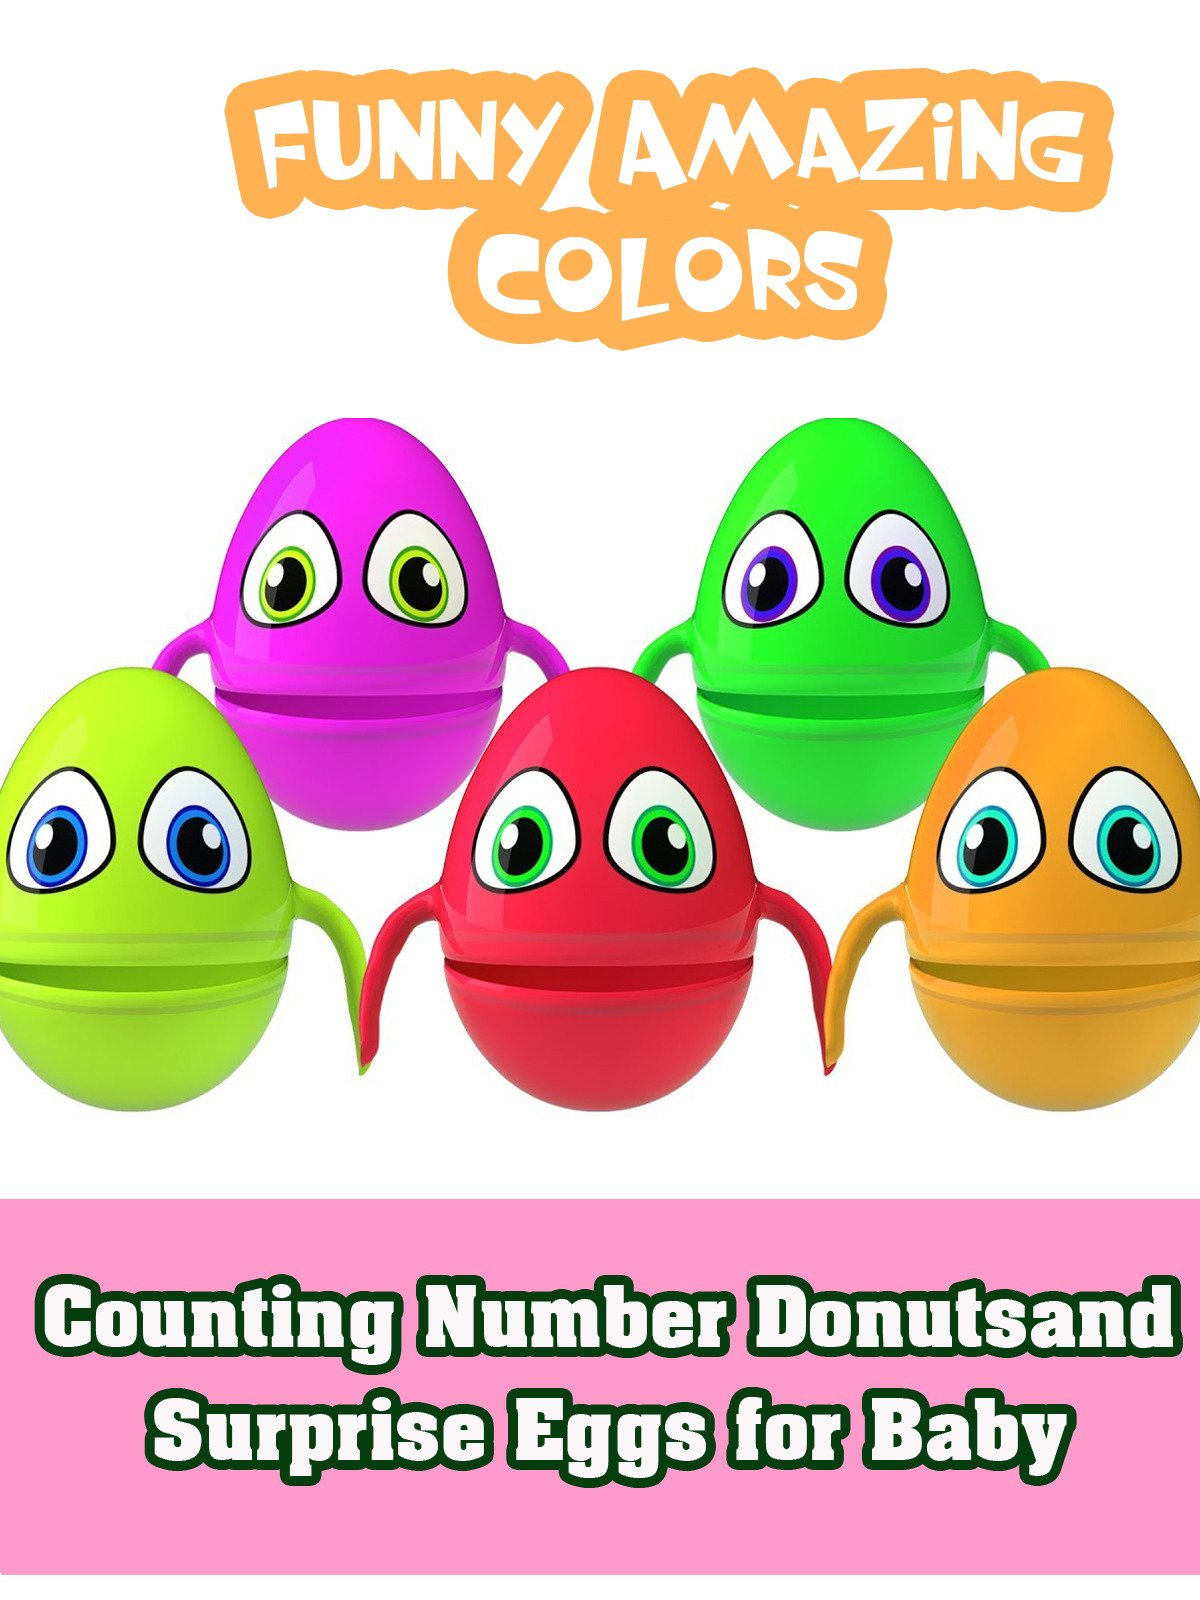 Counting Number Donutsand Surprise Eggs for Baby